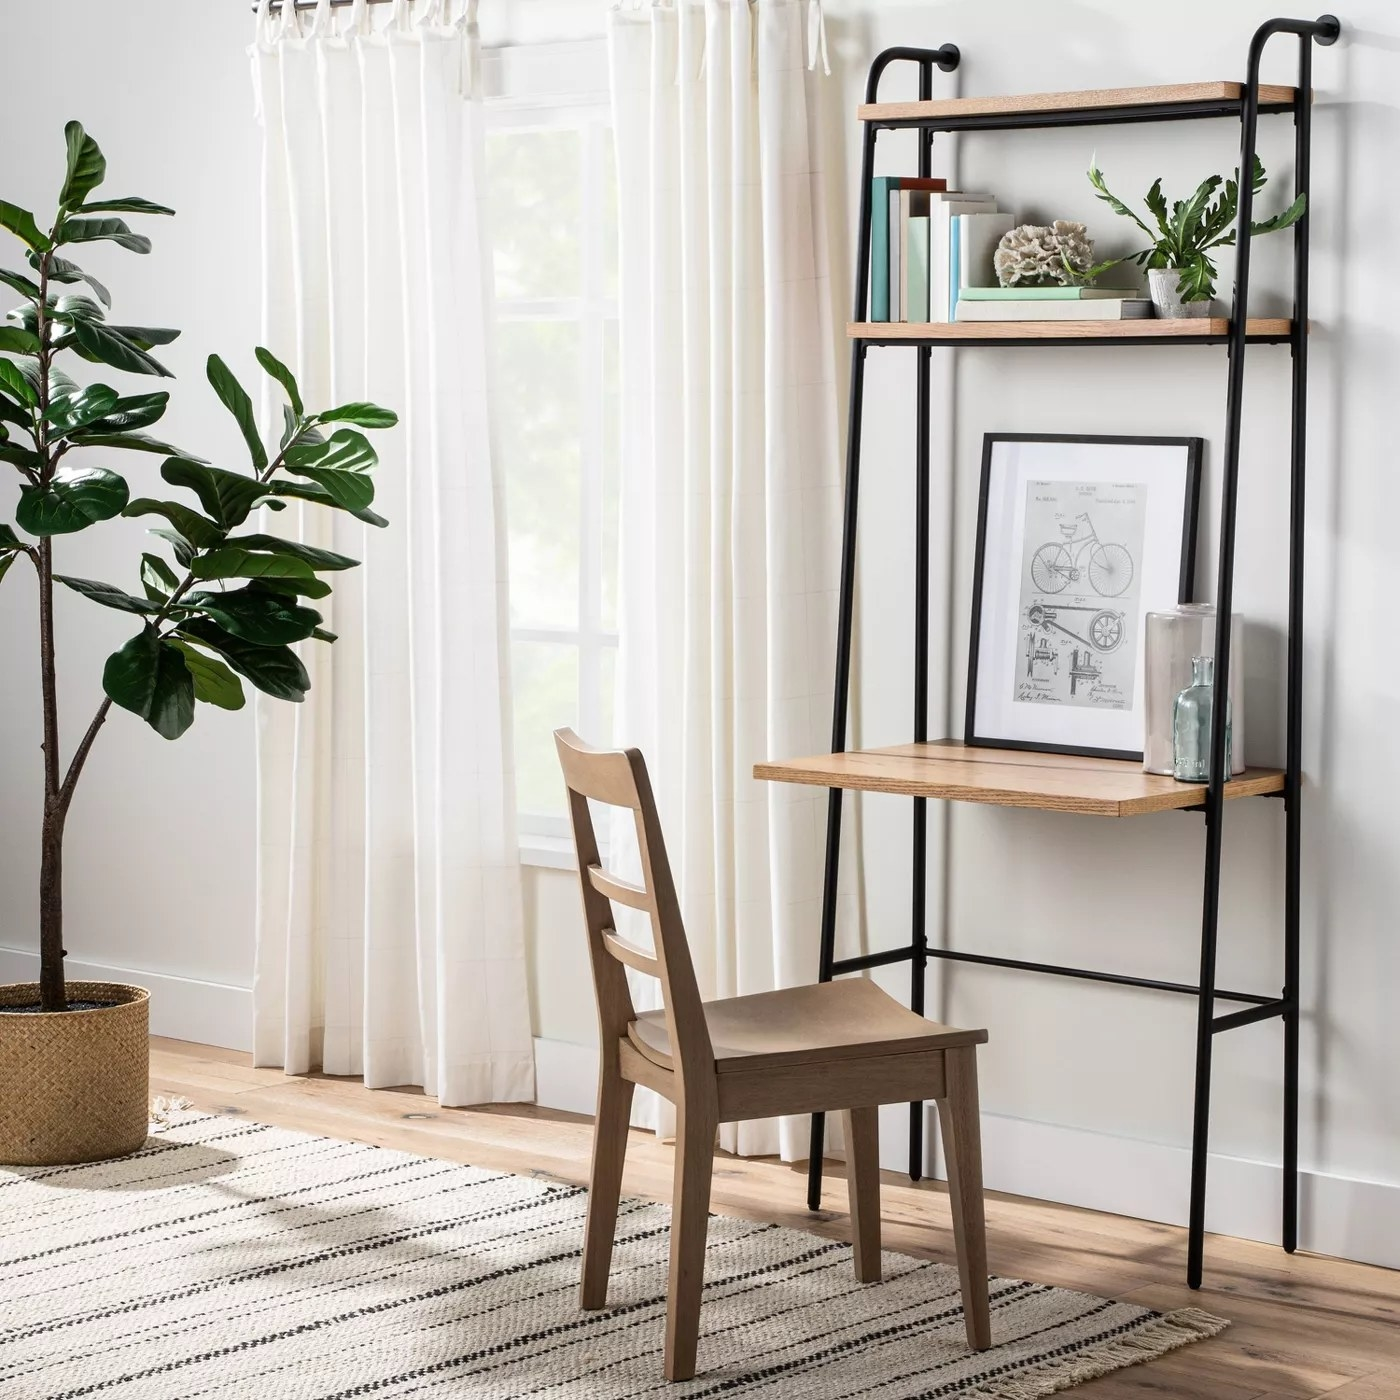 The shelf with a built-in desk anchored to the wall